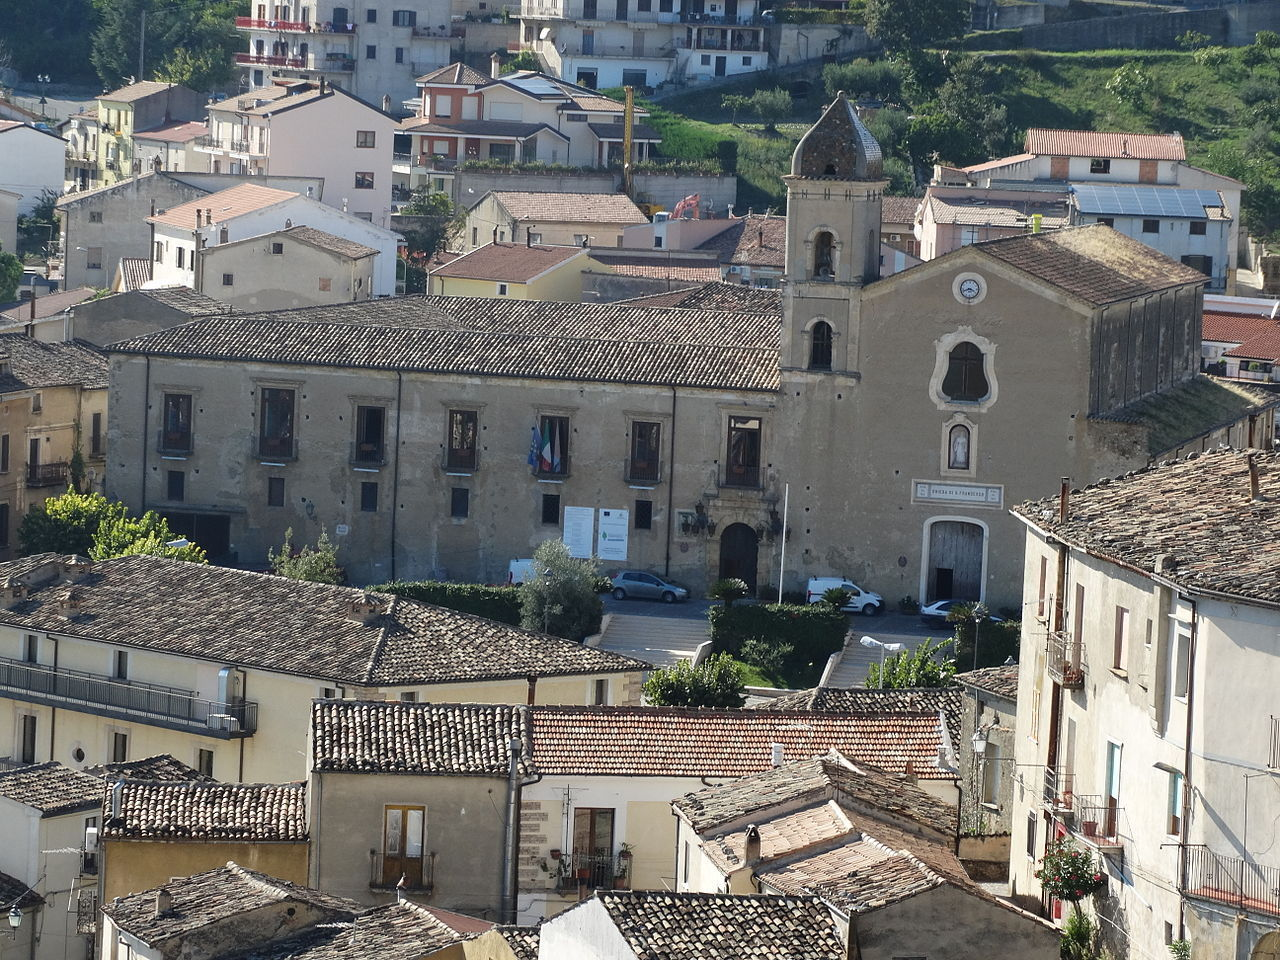 Altomonte - Tour - Visita guidata - Escursioni - Guide Turistiche Associate Calabria - Italy